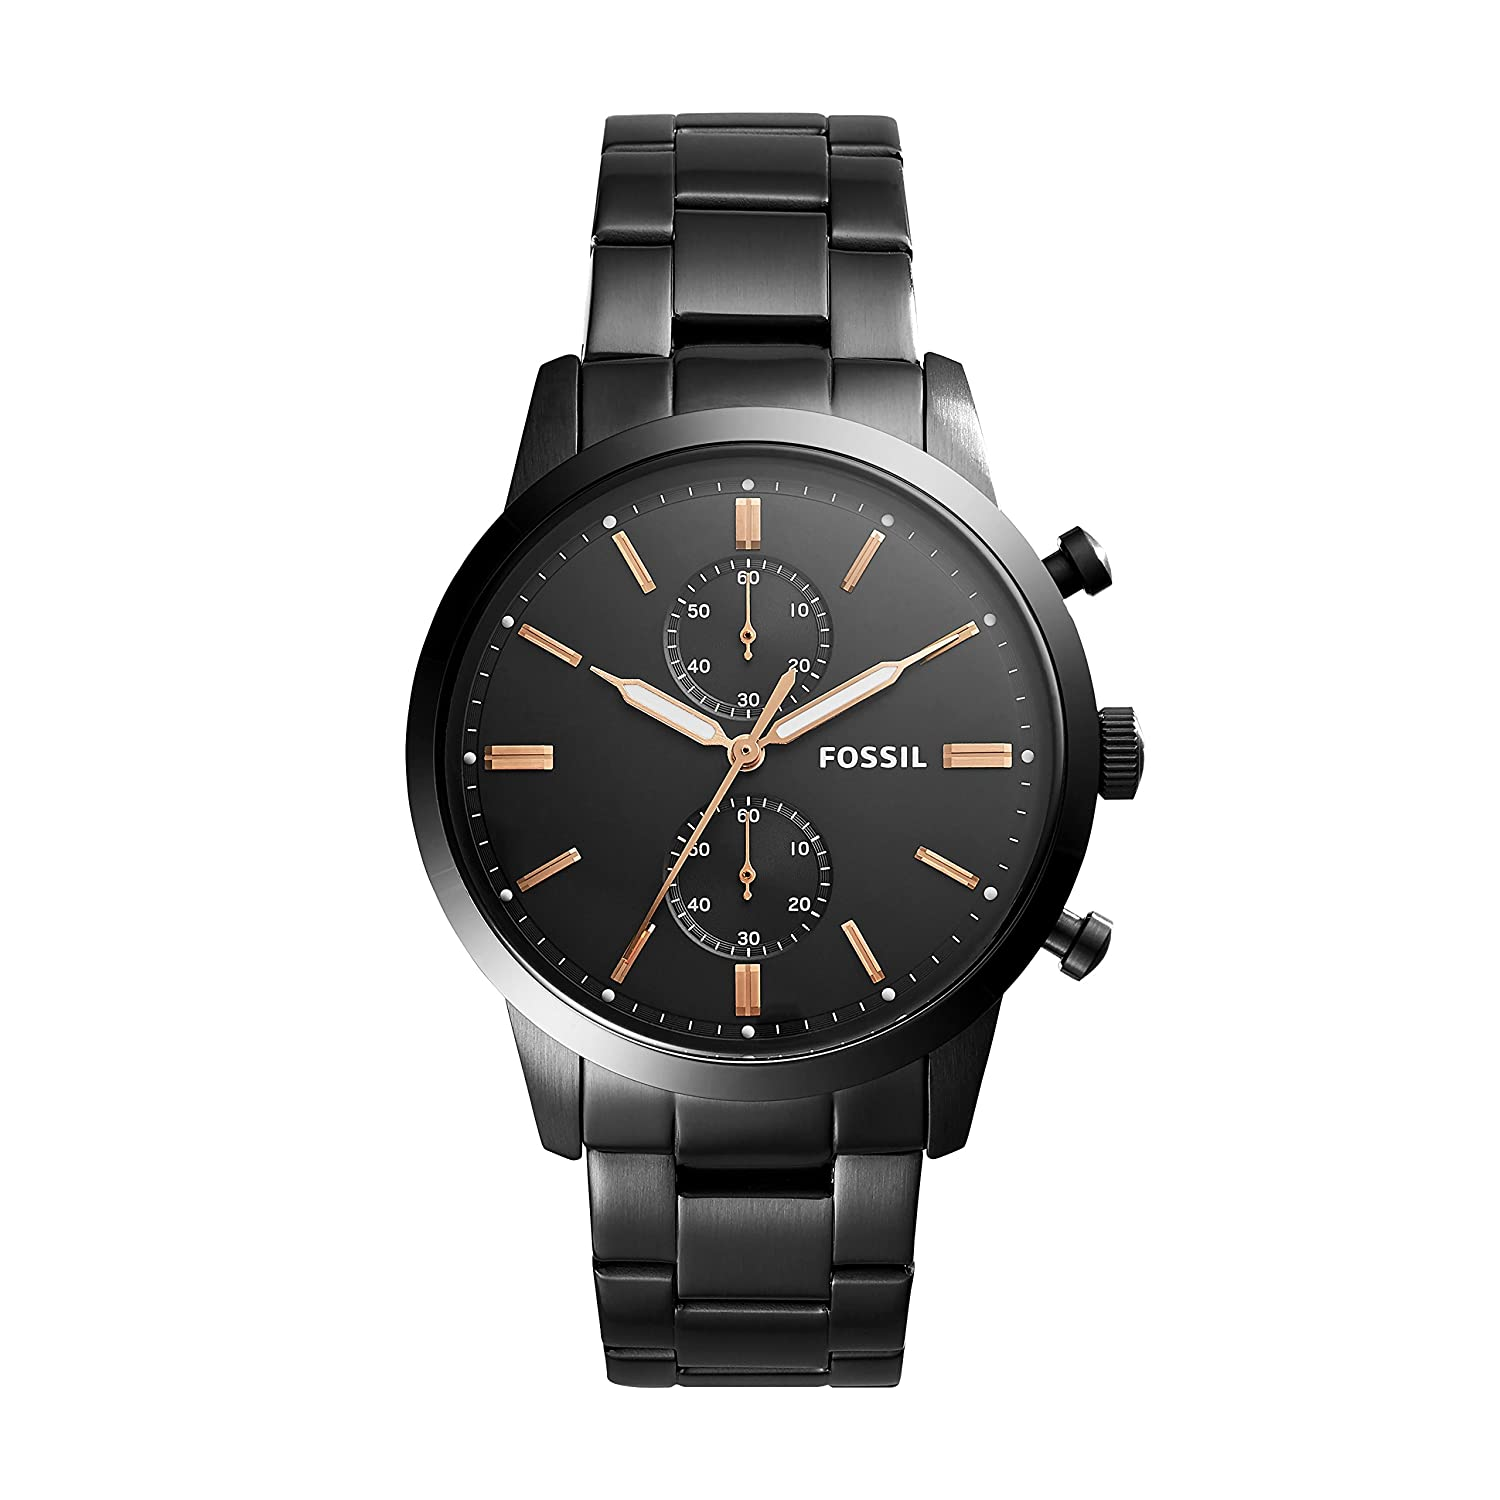 Amazon.com: Fossil Townsman 44mm Chronograph Black Stainless Steel Watch FS5379: Watches